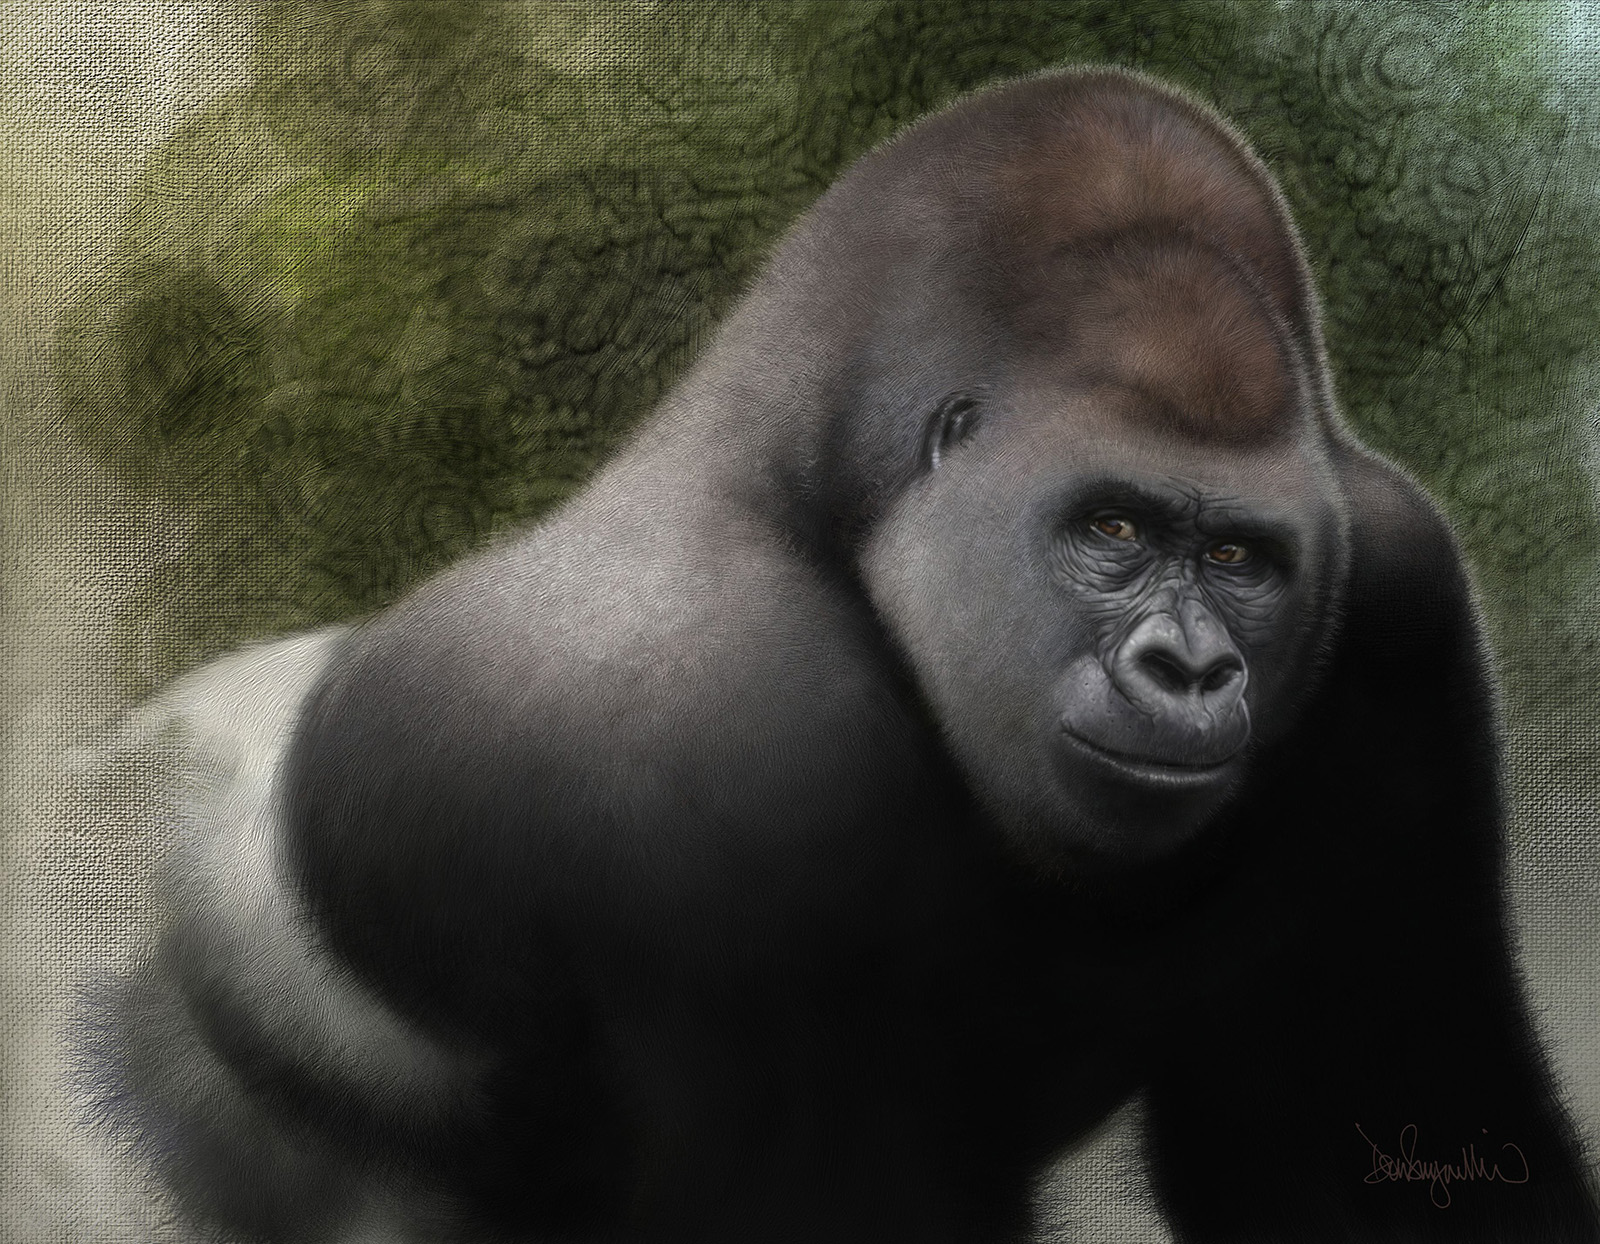 """3. """"Lowland Gorilla"""" One of several paintings for   """"IN DANGER"""" (Project Safehaven004), a book of images of critically endangered animals from around the world.http://www.expeditionart.org/in-danger-book/ Medium: Digital using Painter and Photoshop. Scale/resolution: The art will print 9"""" x 12"""" in the book. Year Created: 2017"""